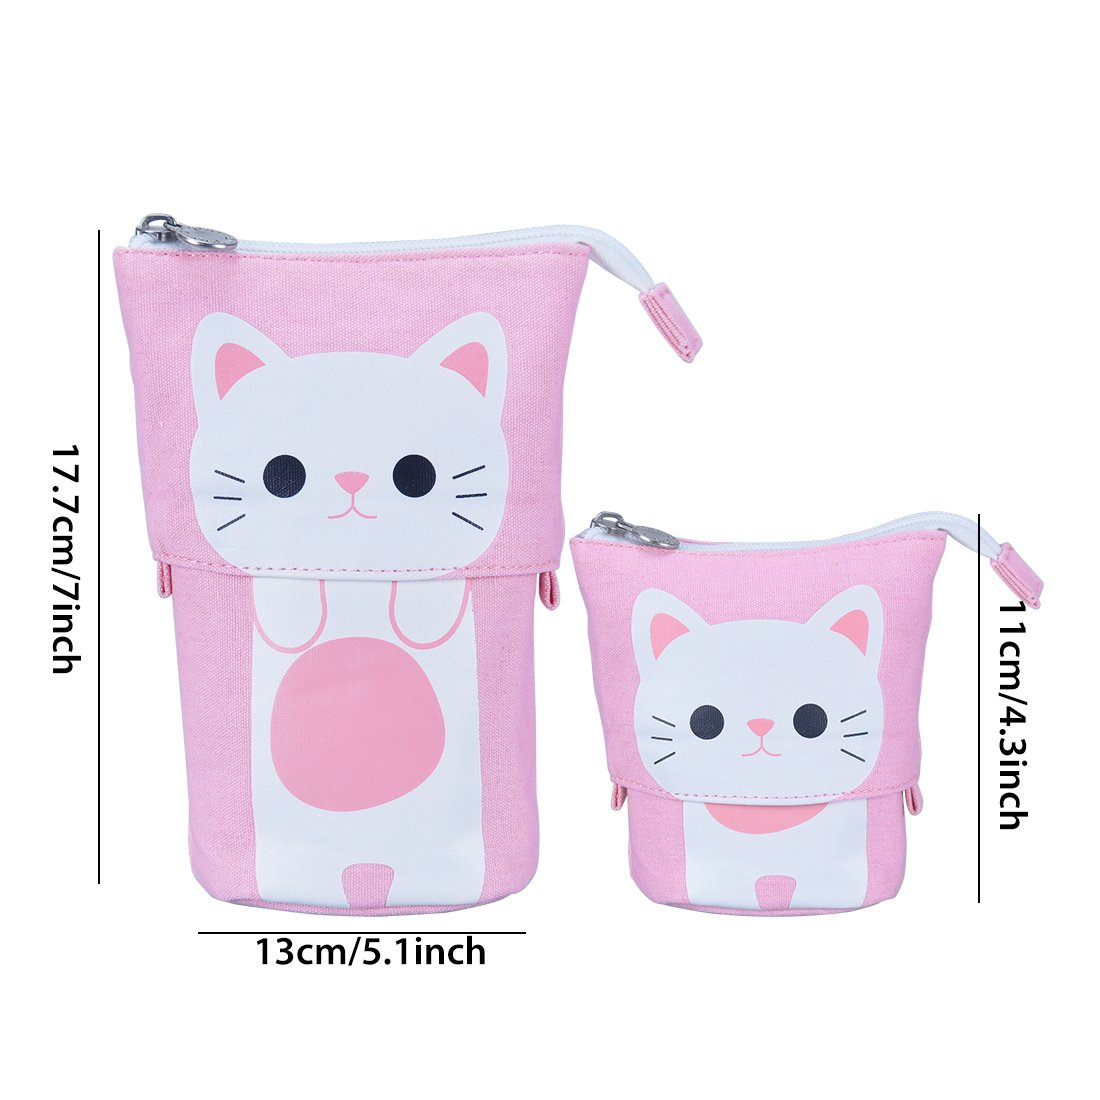 Oyachic Telescopic Pencil Stand Case Canvas Zipper Pen Pouch Small Cosmetics Bag Cute with Inner Pocket (Pink) by Oyachic (Image #2)